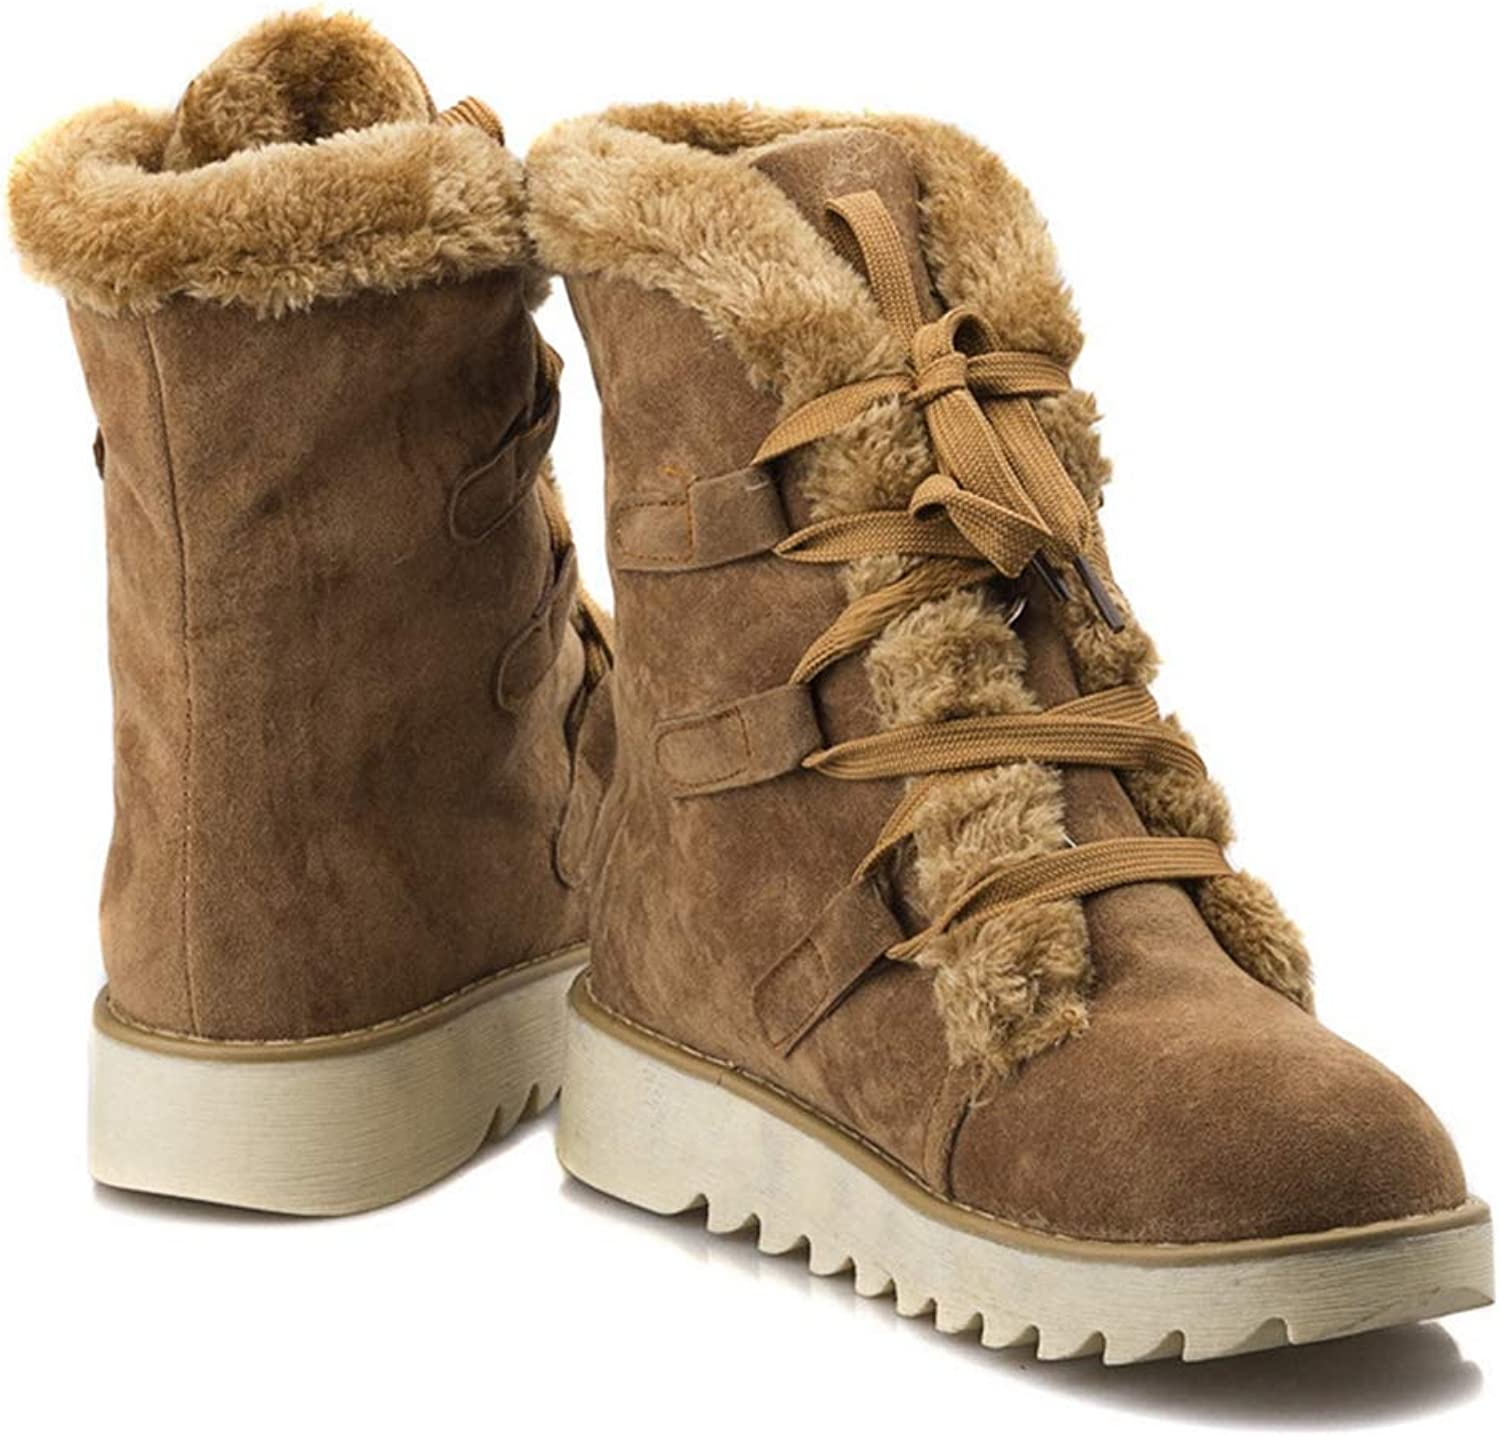 GIY Women's Winter High Top Snow Boots Suede Waterproof Lace Up Warm Fur Lined Cold Weather Ankle Boot Booties